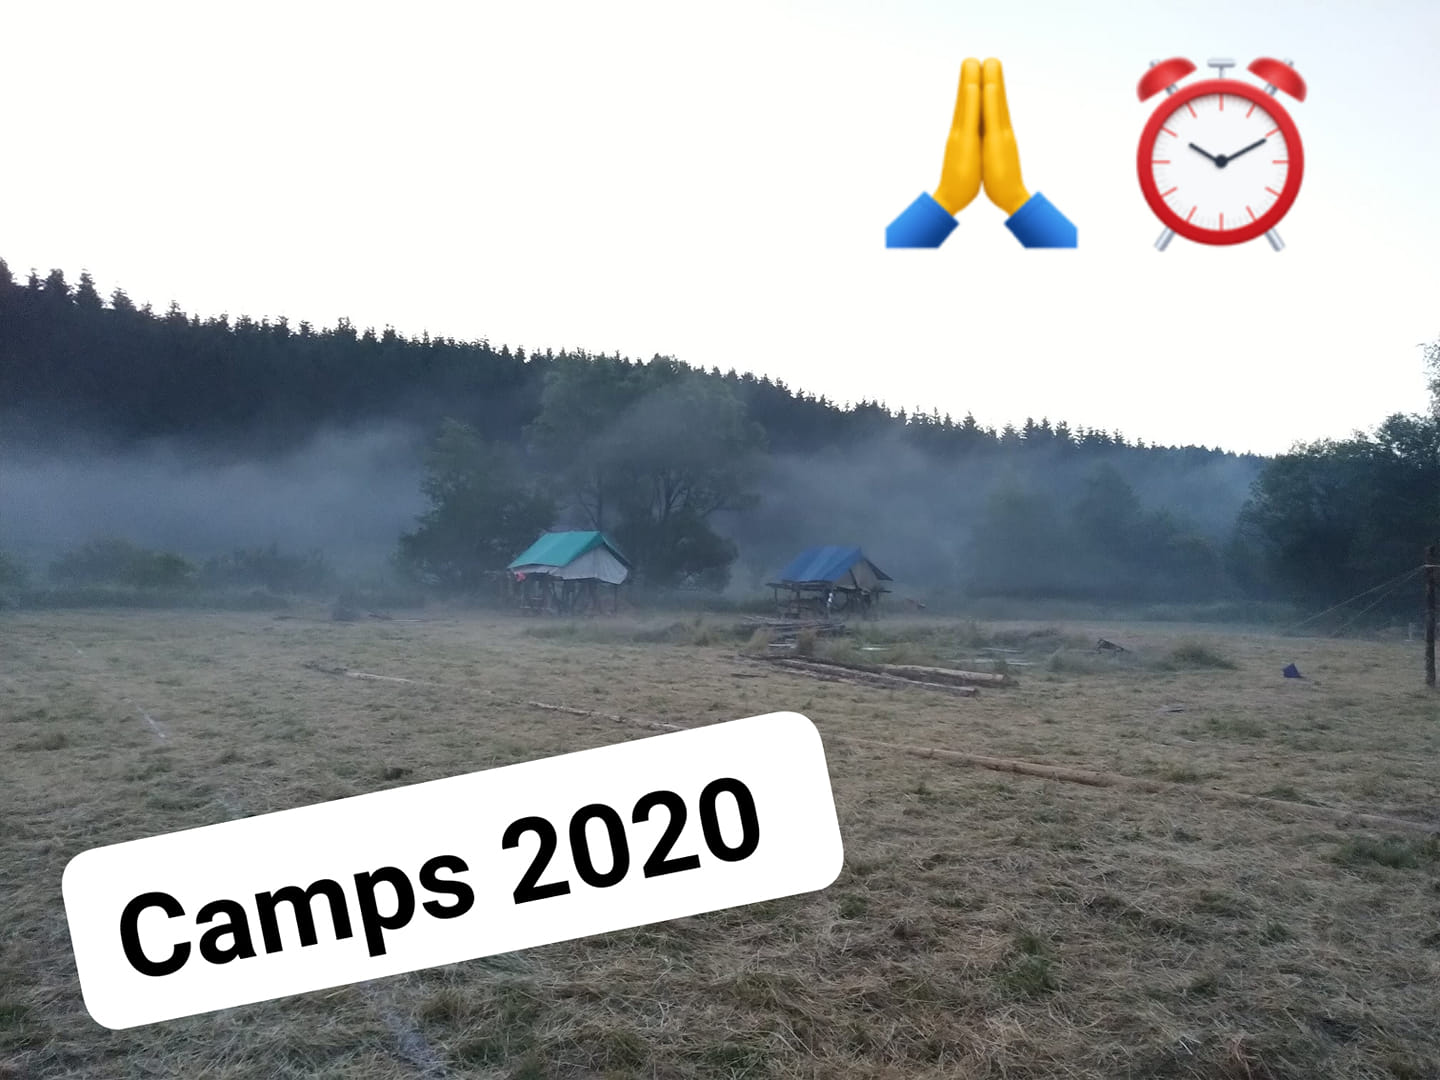 Camps2020